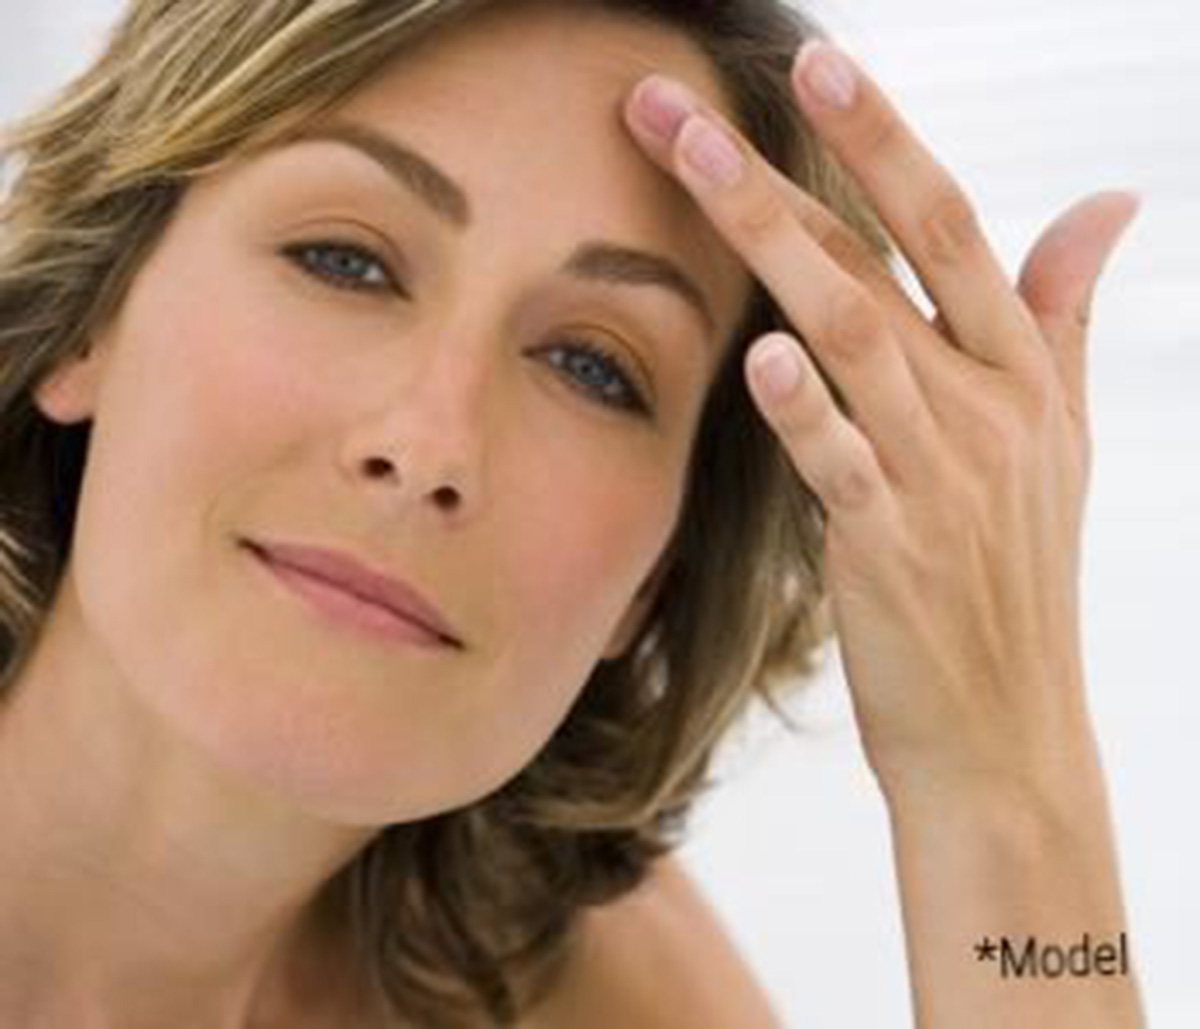 Facelift surgeon in Los Angeles is a great resource for seniors who want to keep their edge